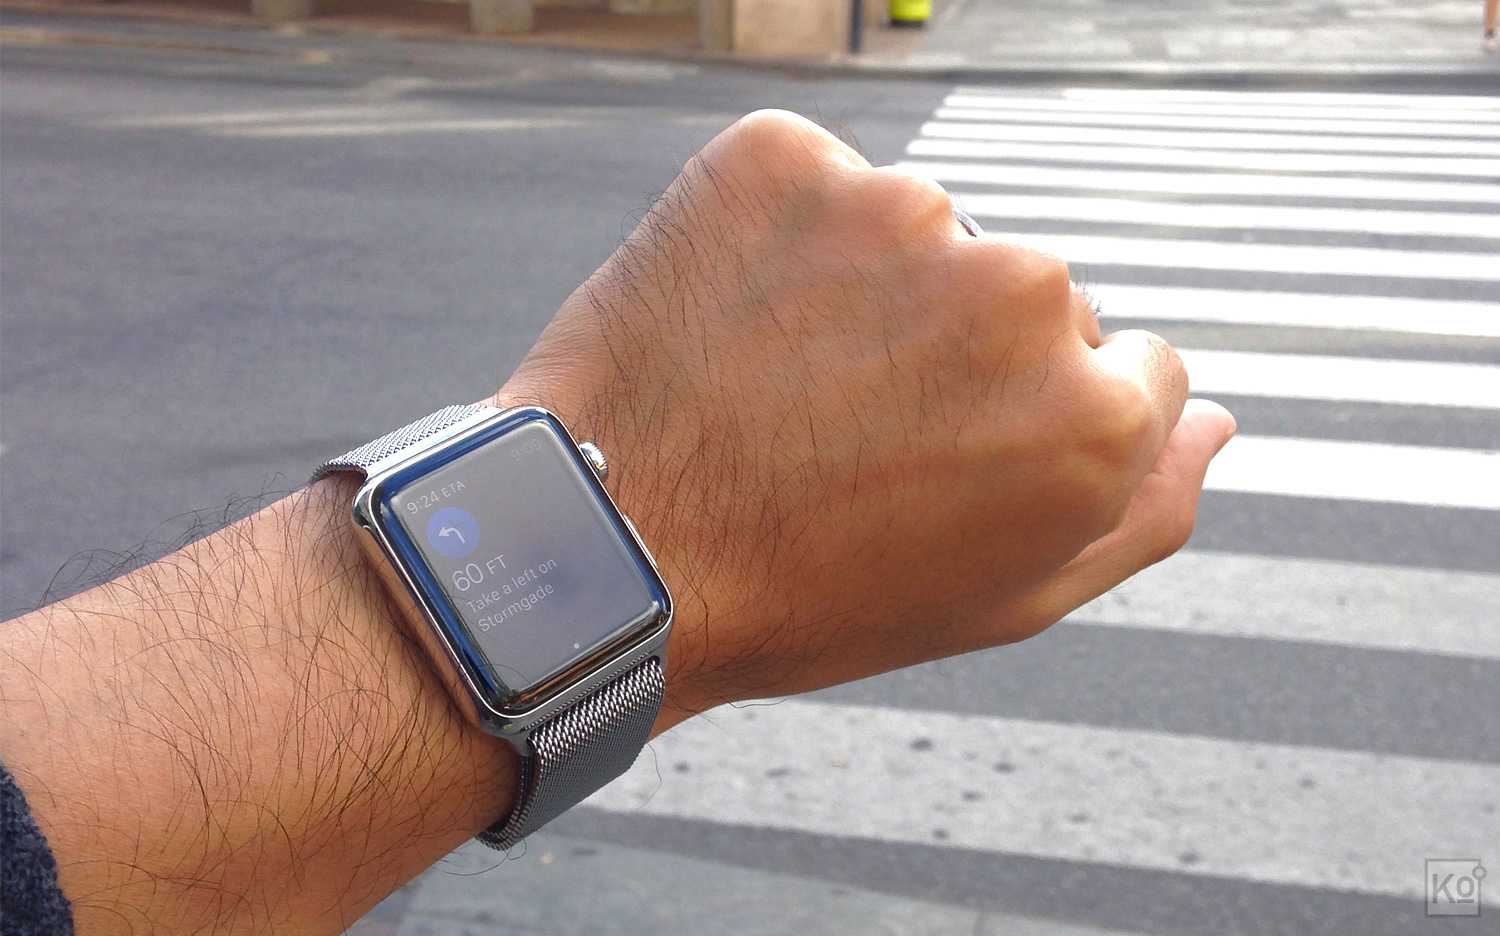 Although it's only occasionally useful, the most magical feature of Apple Watch I've experienced thus far is its application of haptic feedback (i.e. buzzing on your wrist) to enable eyes-free navigation. This works whether you're driving or walking, but is most effective when exploring a city on foot. I used it frequently while on a recent holiday in Copenhagen and it made me feel like I had some form of extrasensory perception; I was able to navigate streets I'd never encountered before without once looking down at my phone's screen for directions. This is an experience that can only be delivered by way of a wearable computer, and it makes me hopeful for the future of Apple Watch as a platform that enables use cases wholly distinct from today's smartphones.